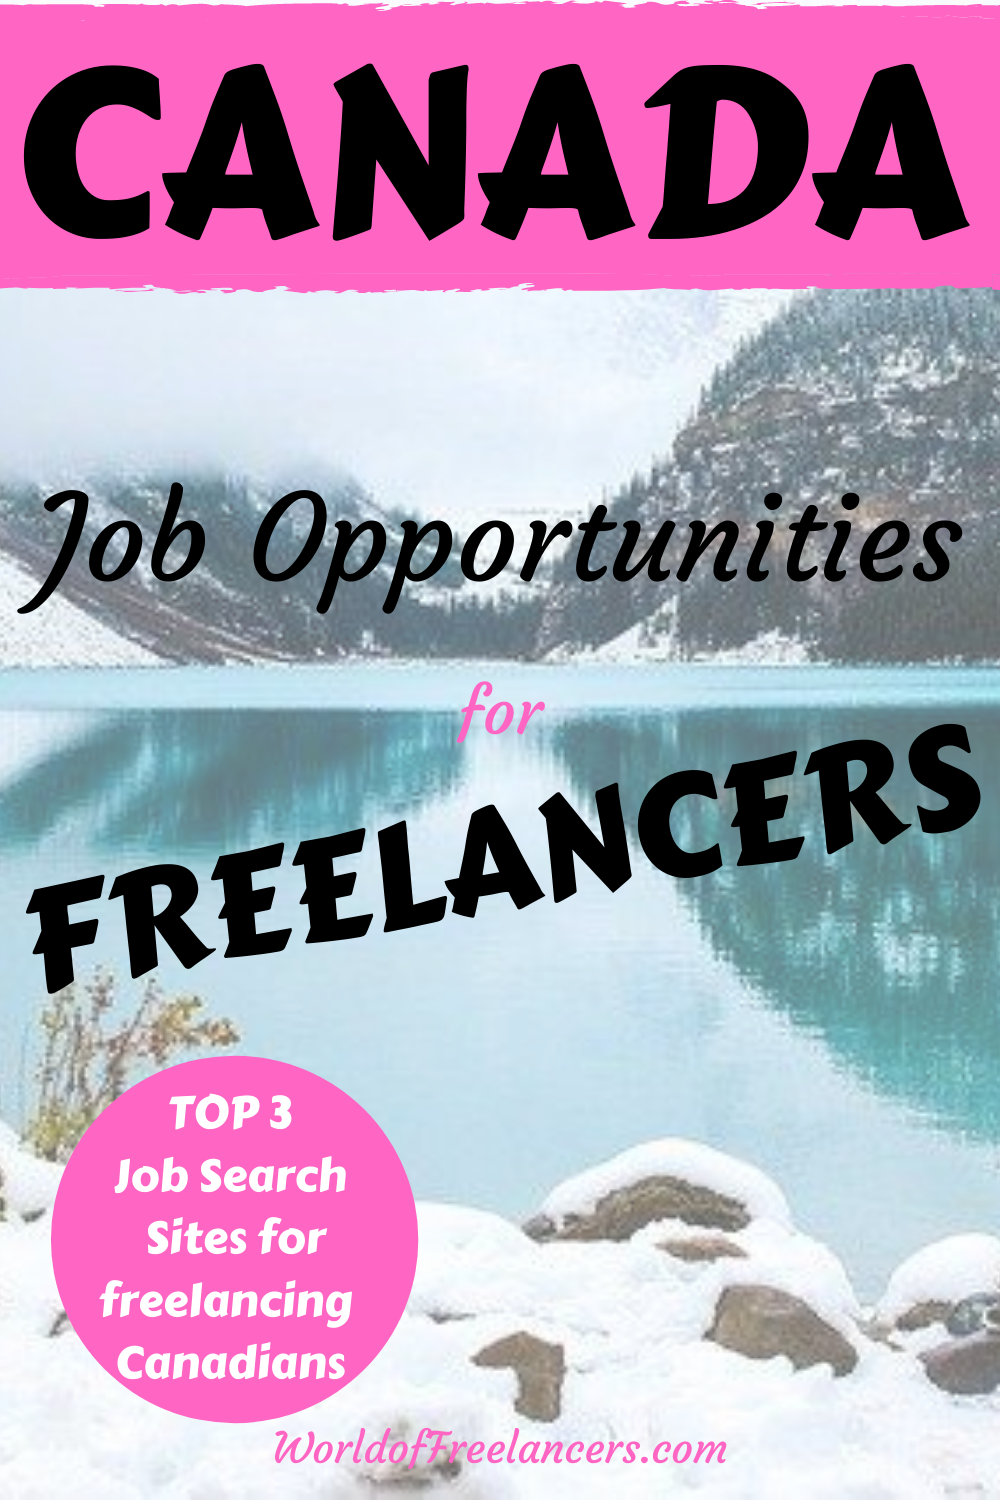 Winter water and mountain scene in Canada for Pinterest with pink, black and white text saying Canada job opportunities for freelancers - top 3 job search sites for freelancing Canadians